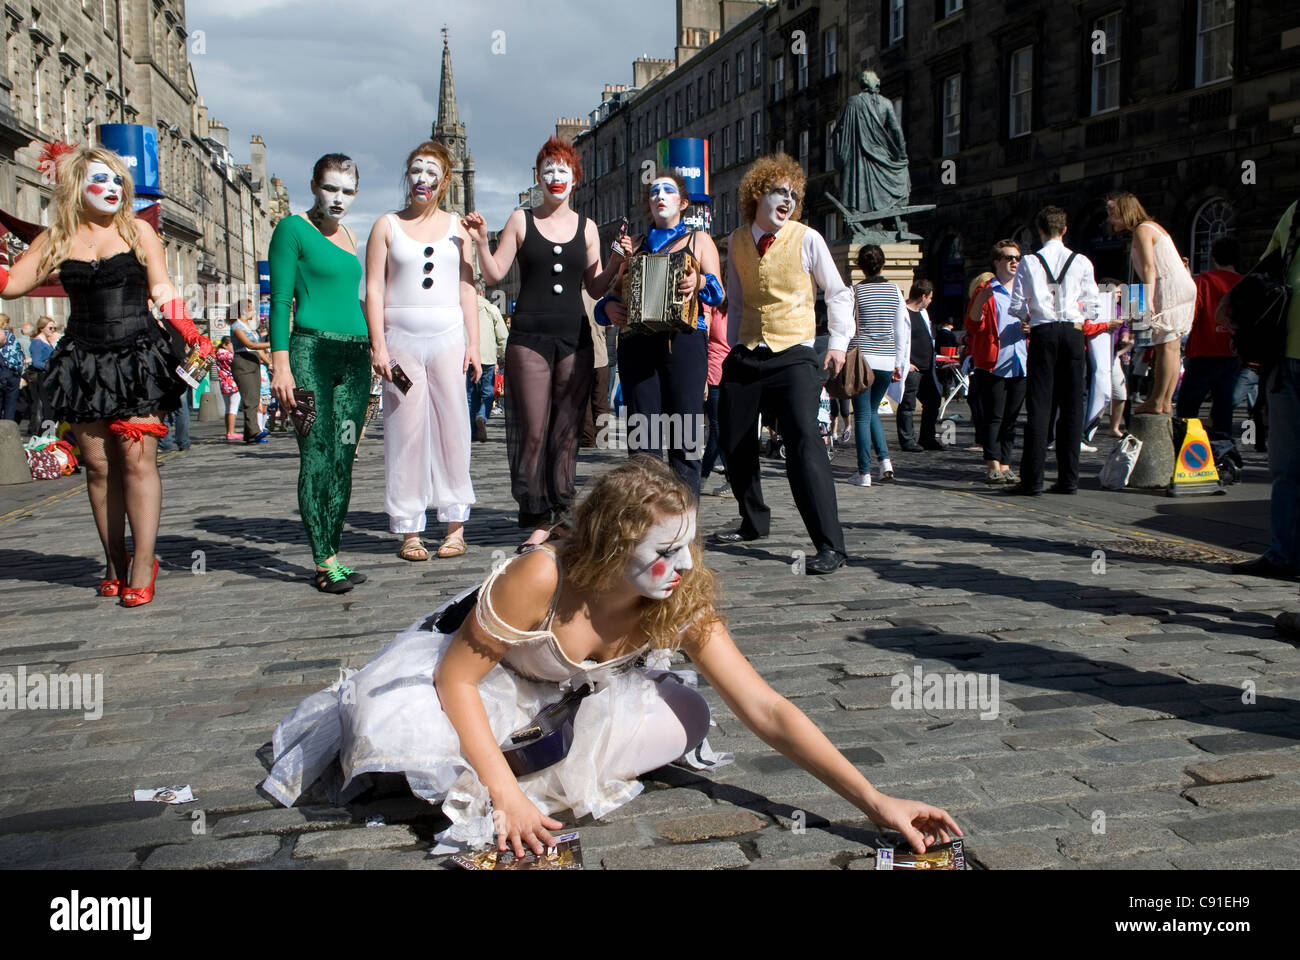 Artists promote their acts along the Royal Mile during the annual Edinburgh Festival of the arts. - Stock Image